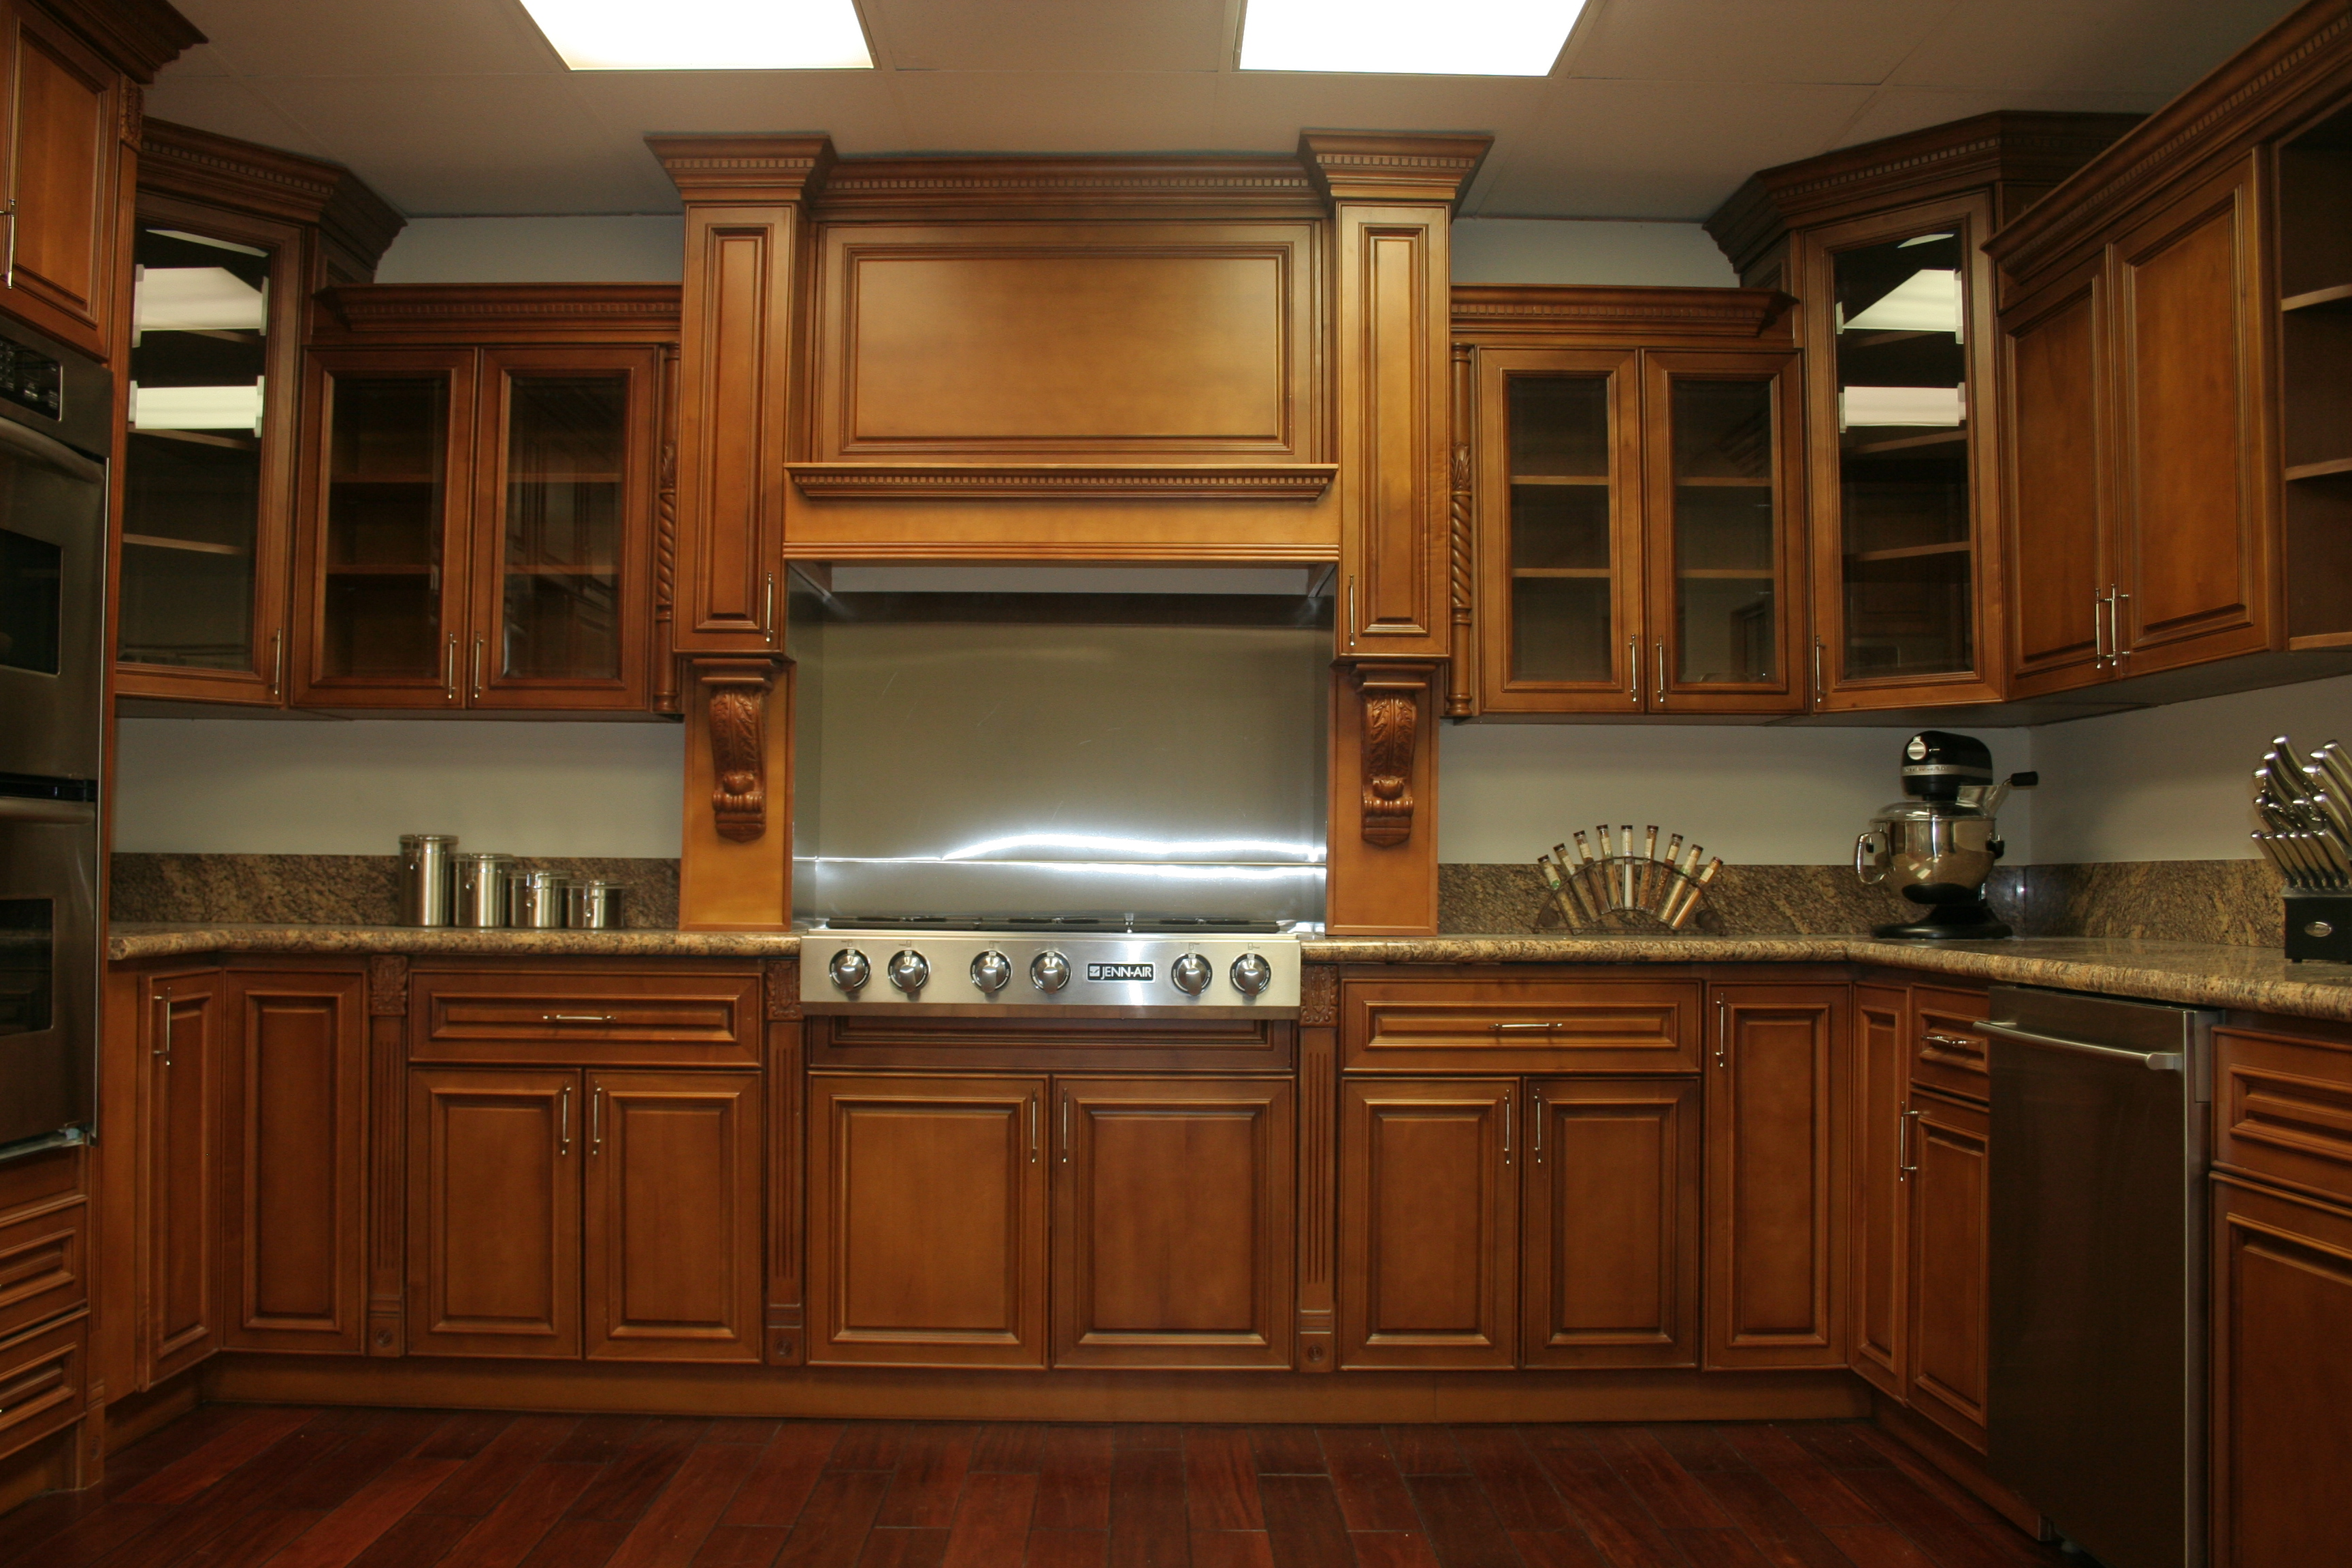 Interior ideas deep brown wooden maple kitchen cabinets for Interior designs cupboards